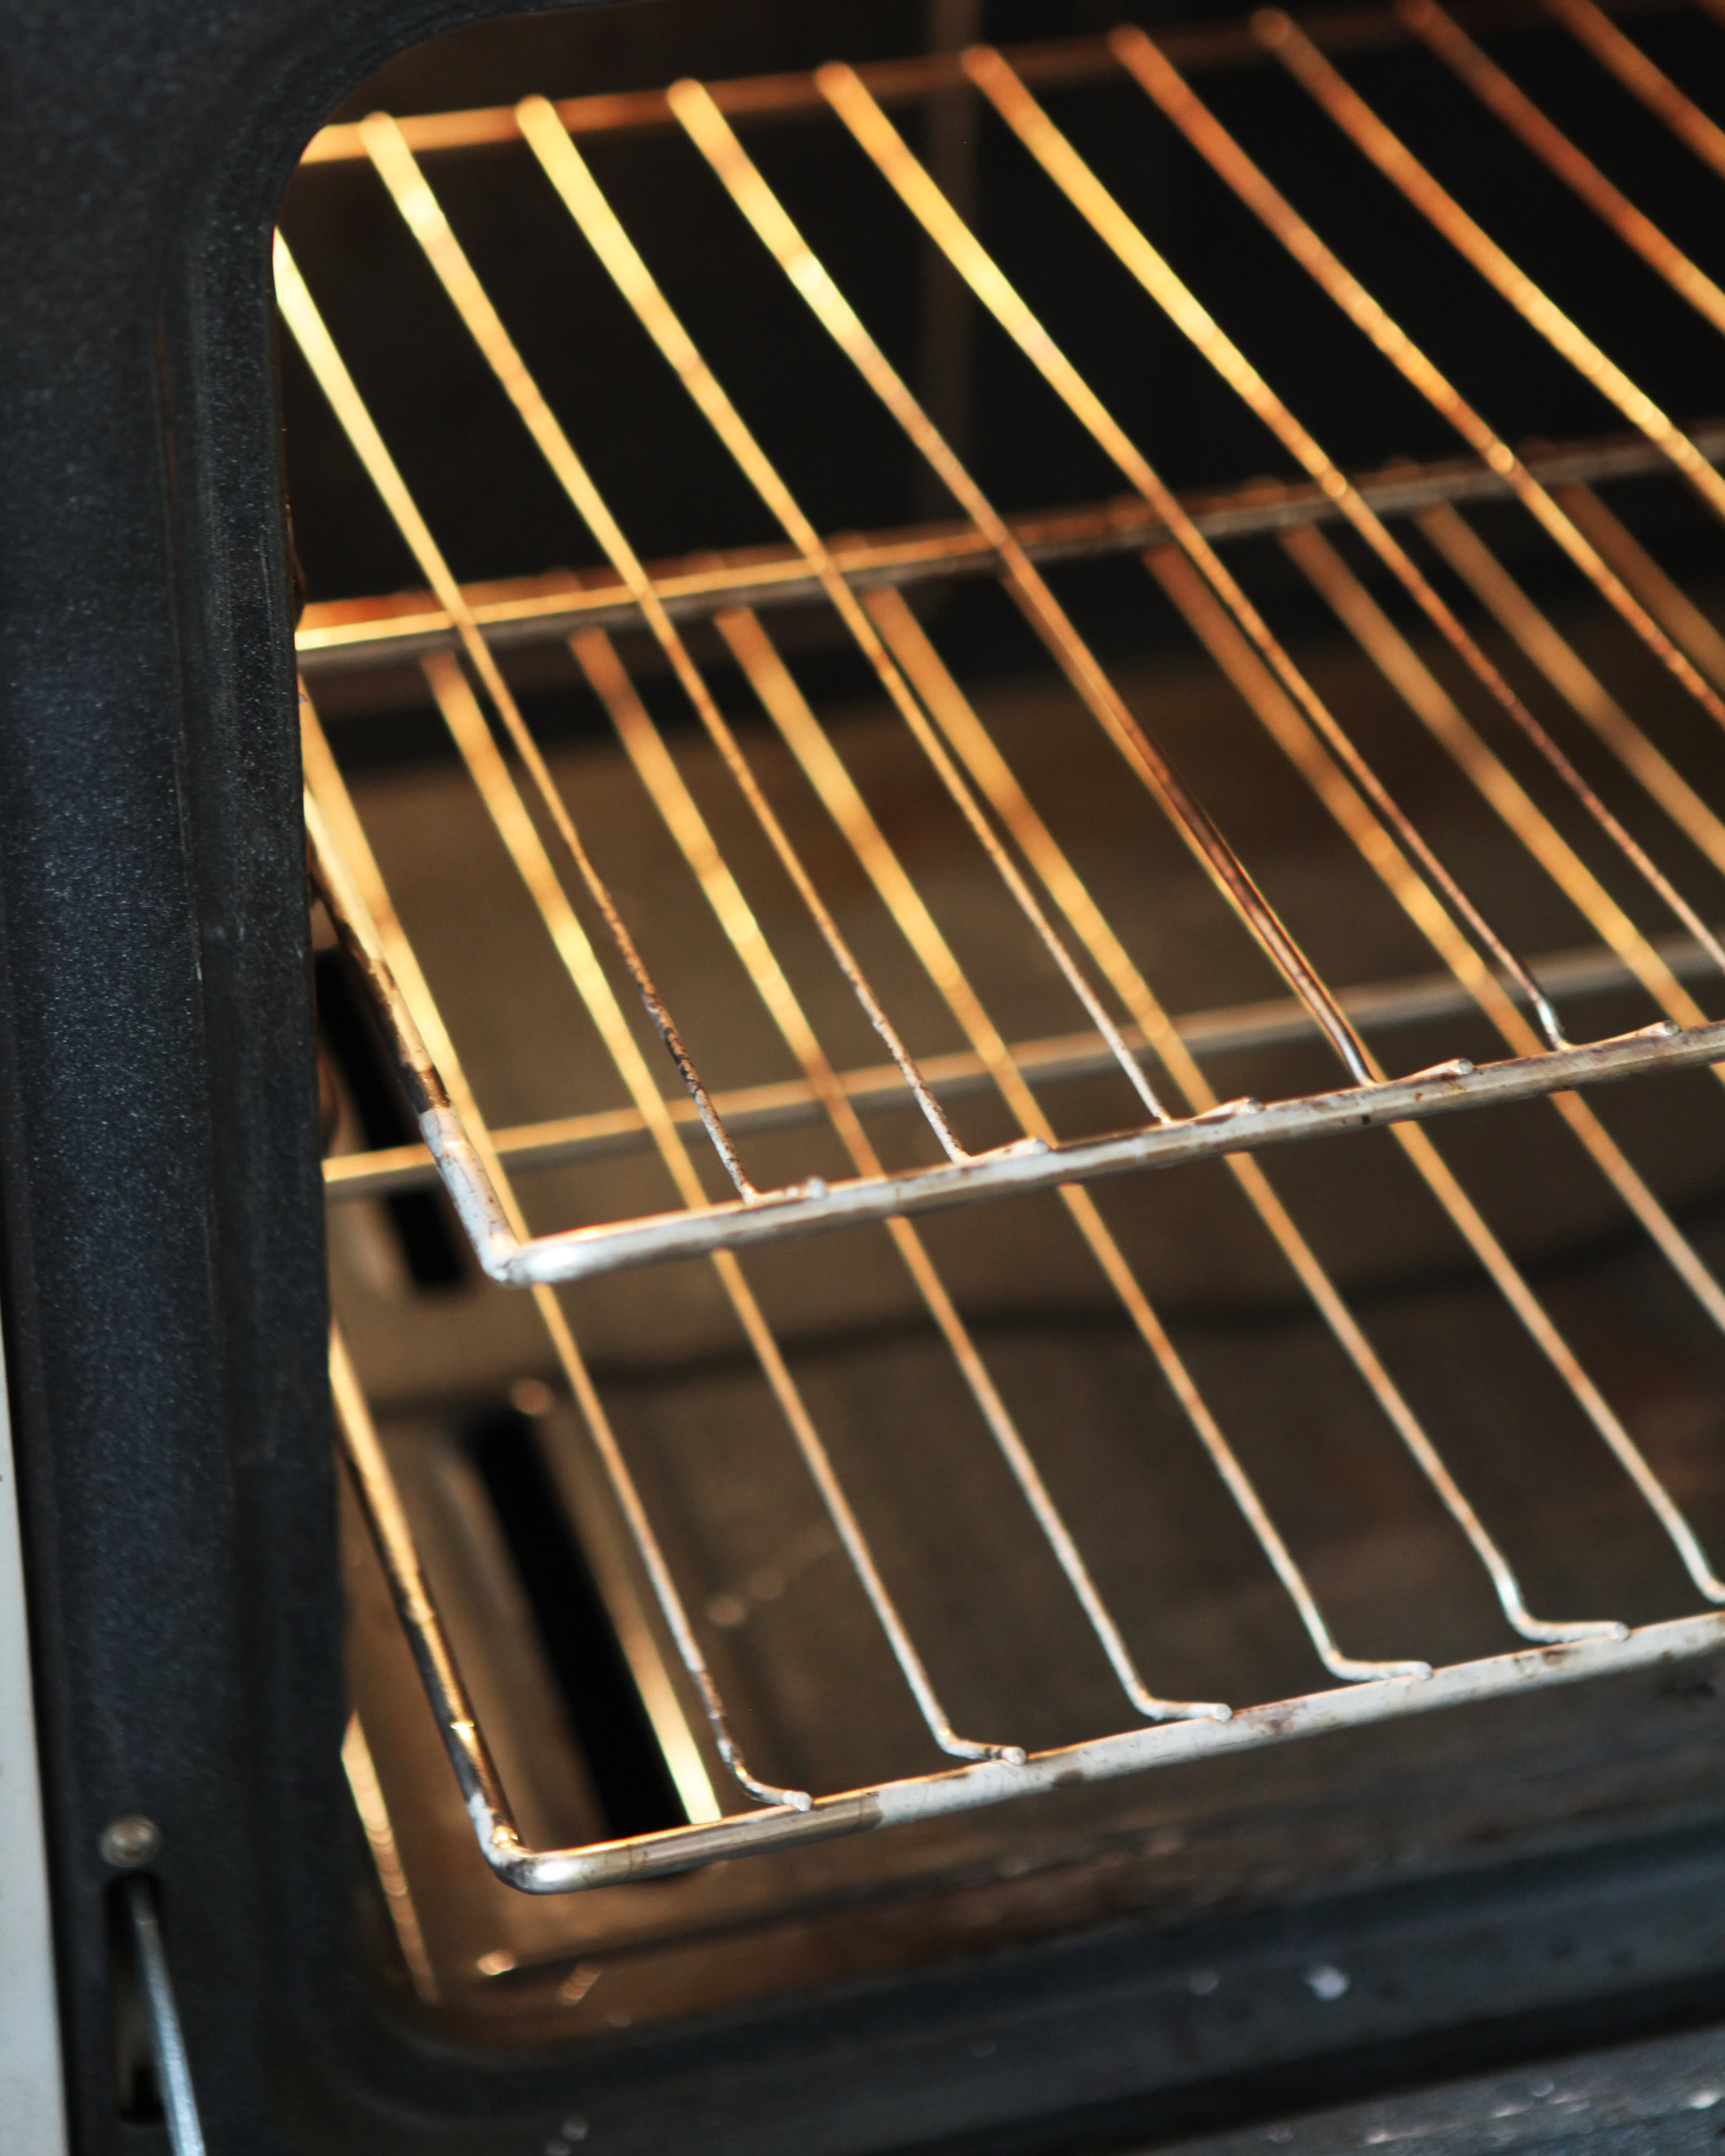 How To Clean an Oven with Baking Soda & Vinegar: gallery image 9